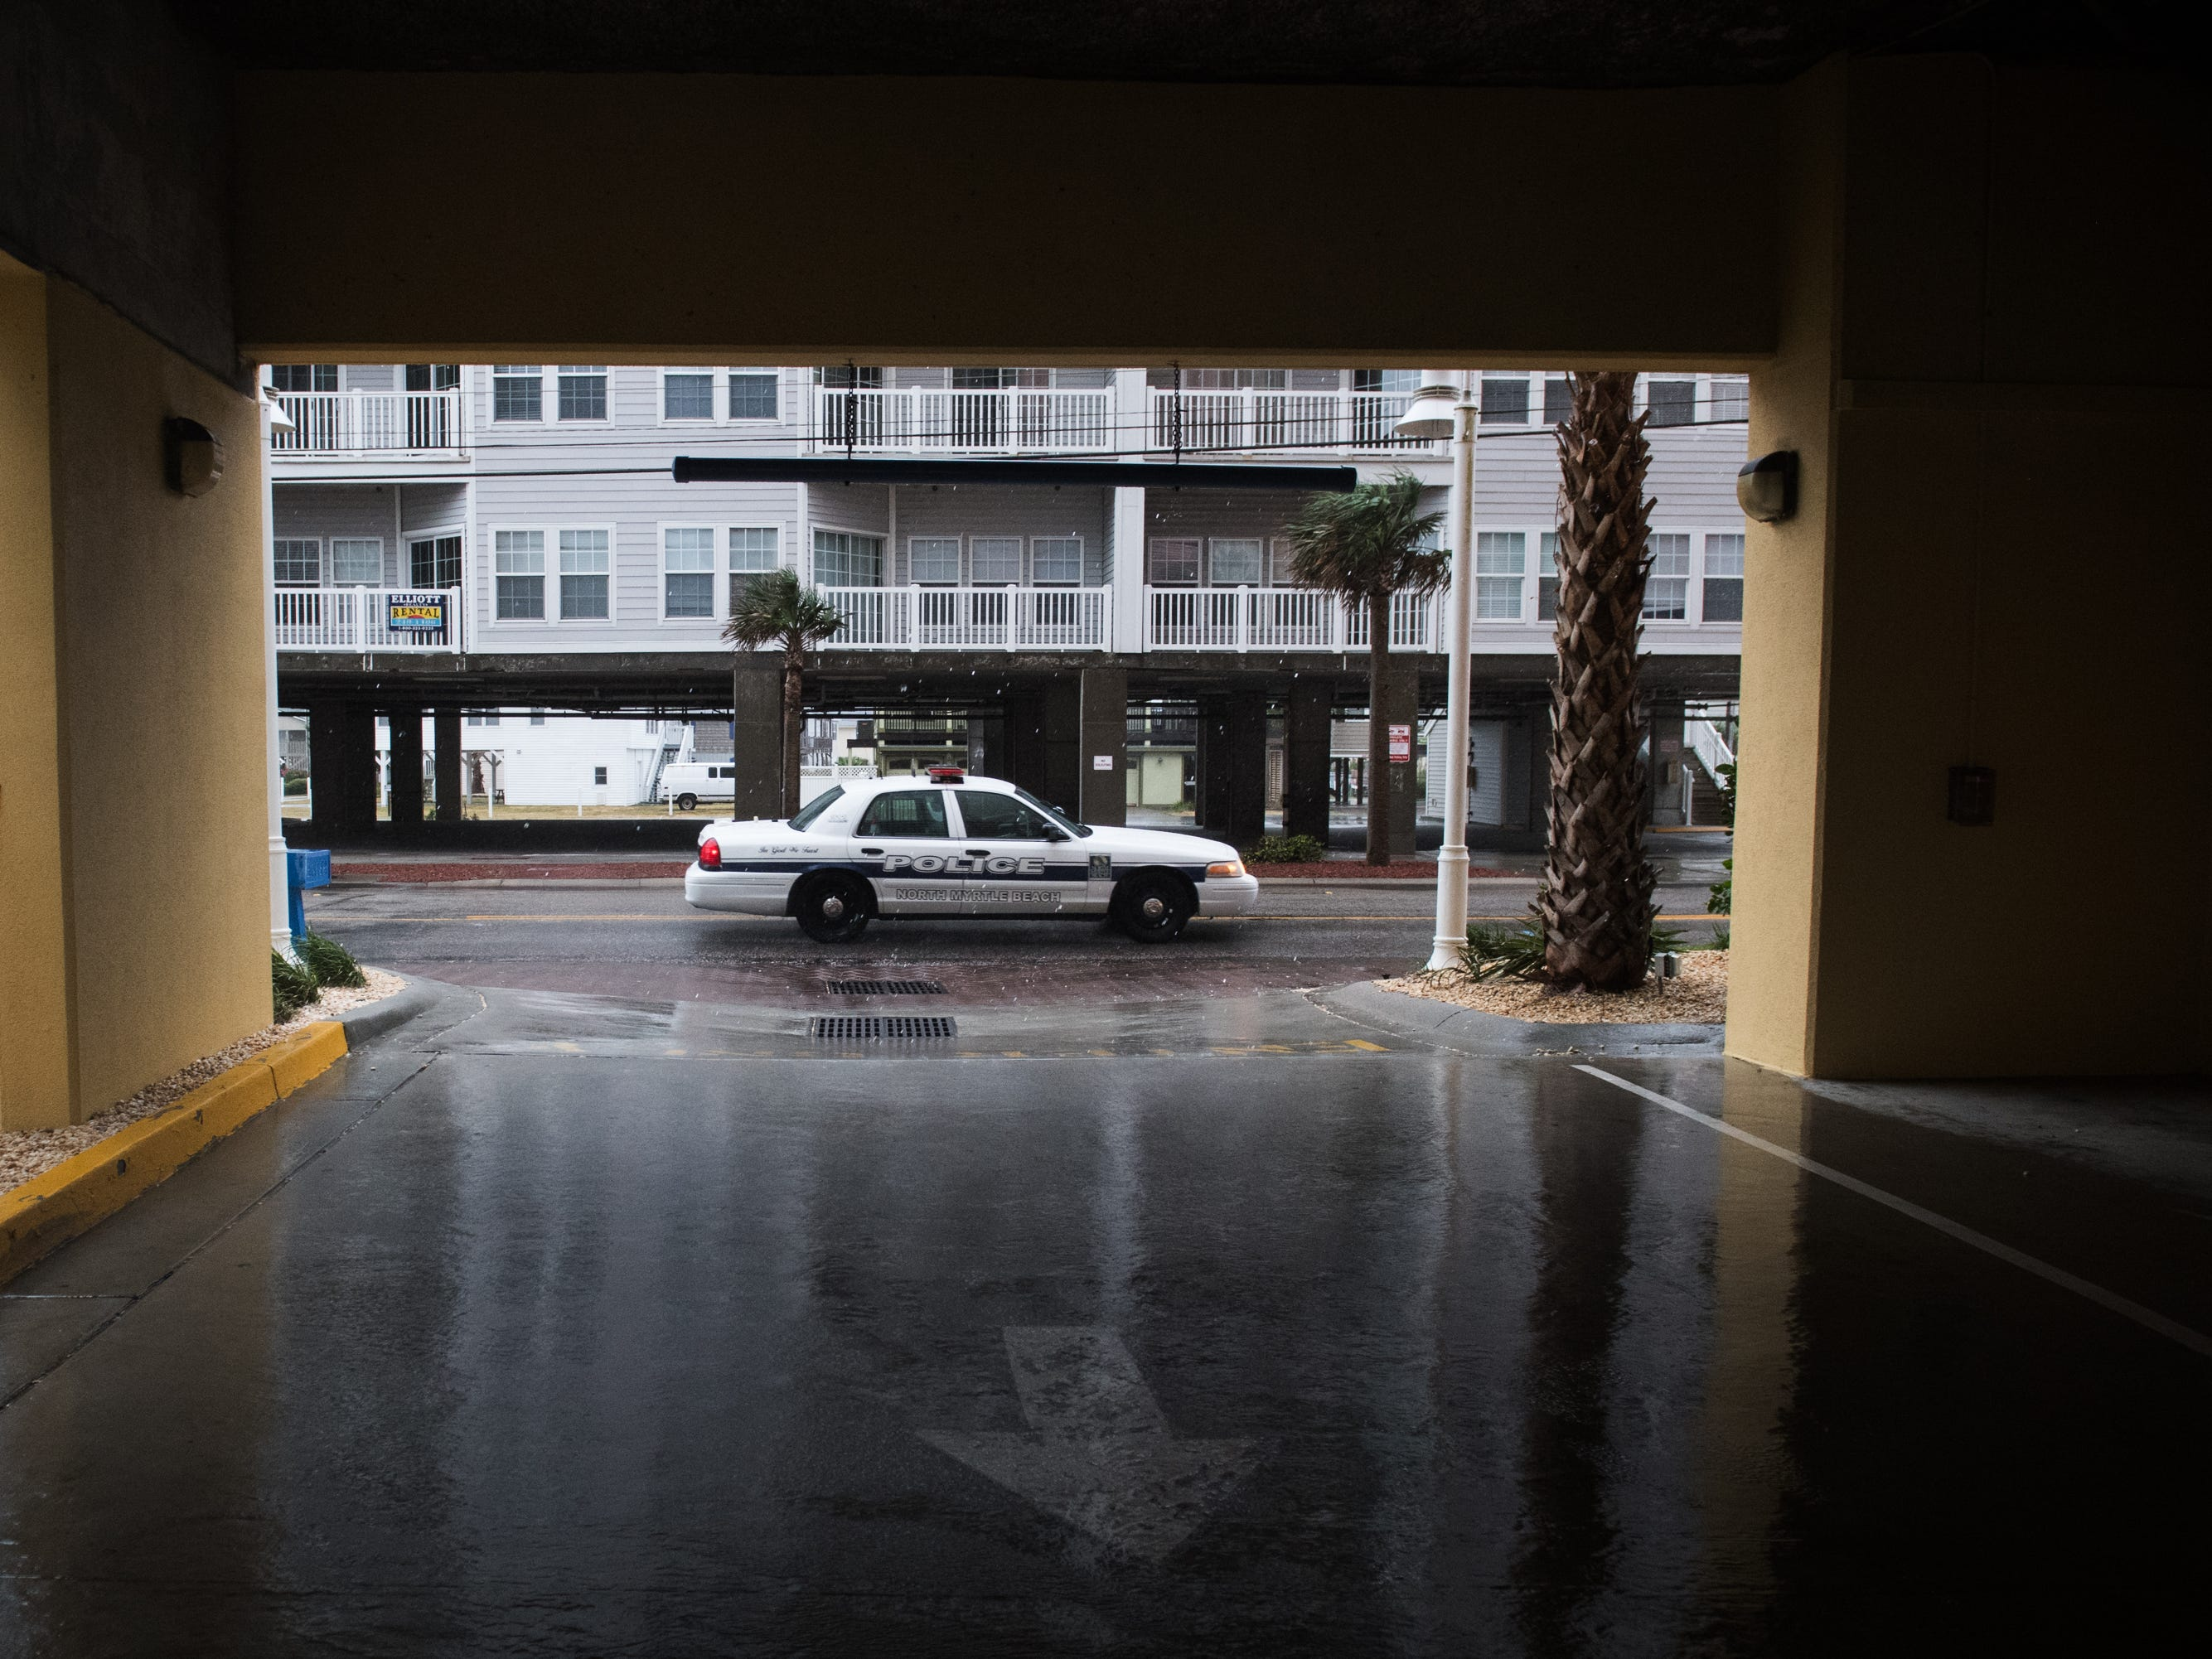 A North Myrtle Beach Public Safety officer drives down North Ocean Boulevard as  the first rain from an outer band of Hurricane Florence hits the Cherry Grove Pier area of North Myrtle Beach on Thursday, Sept. 13, 2018.